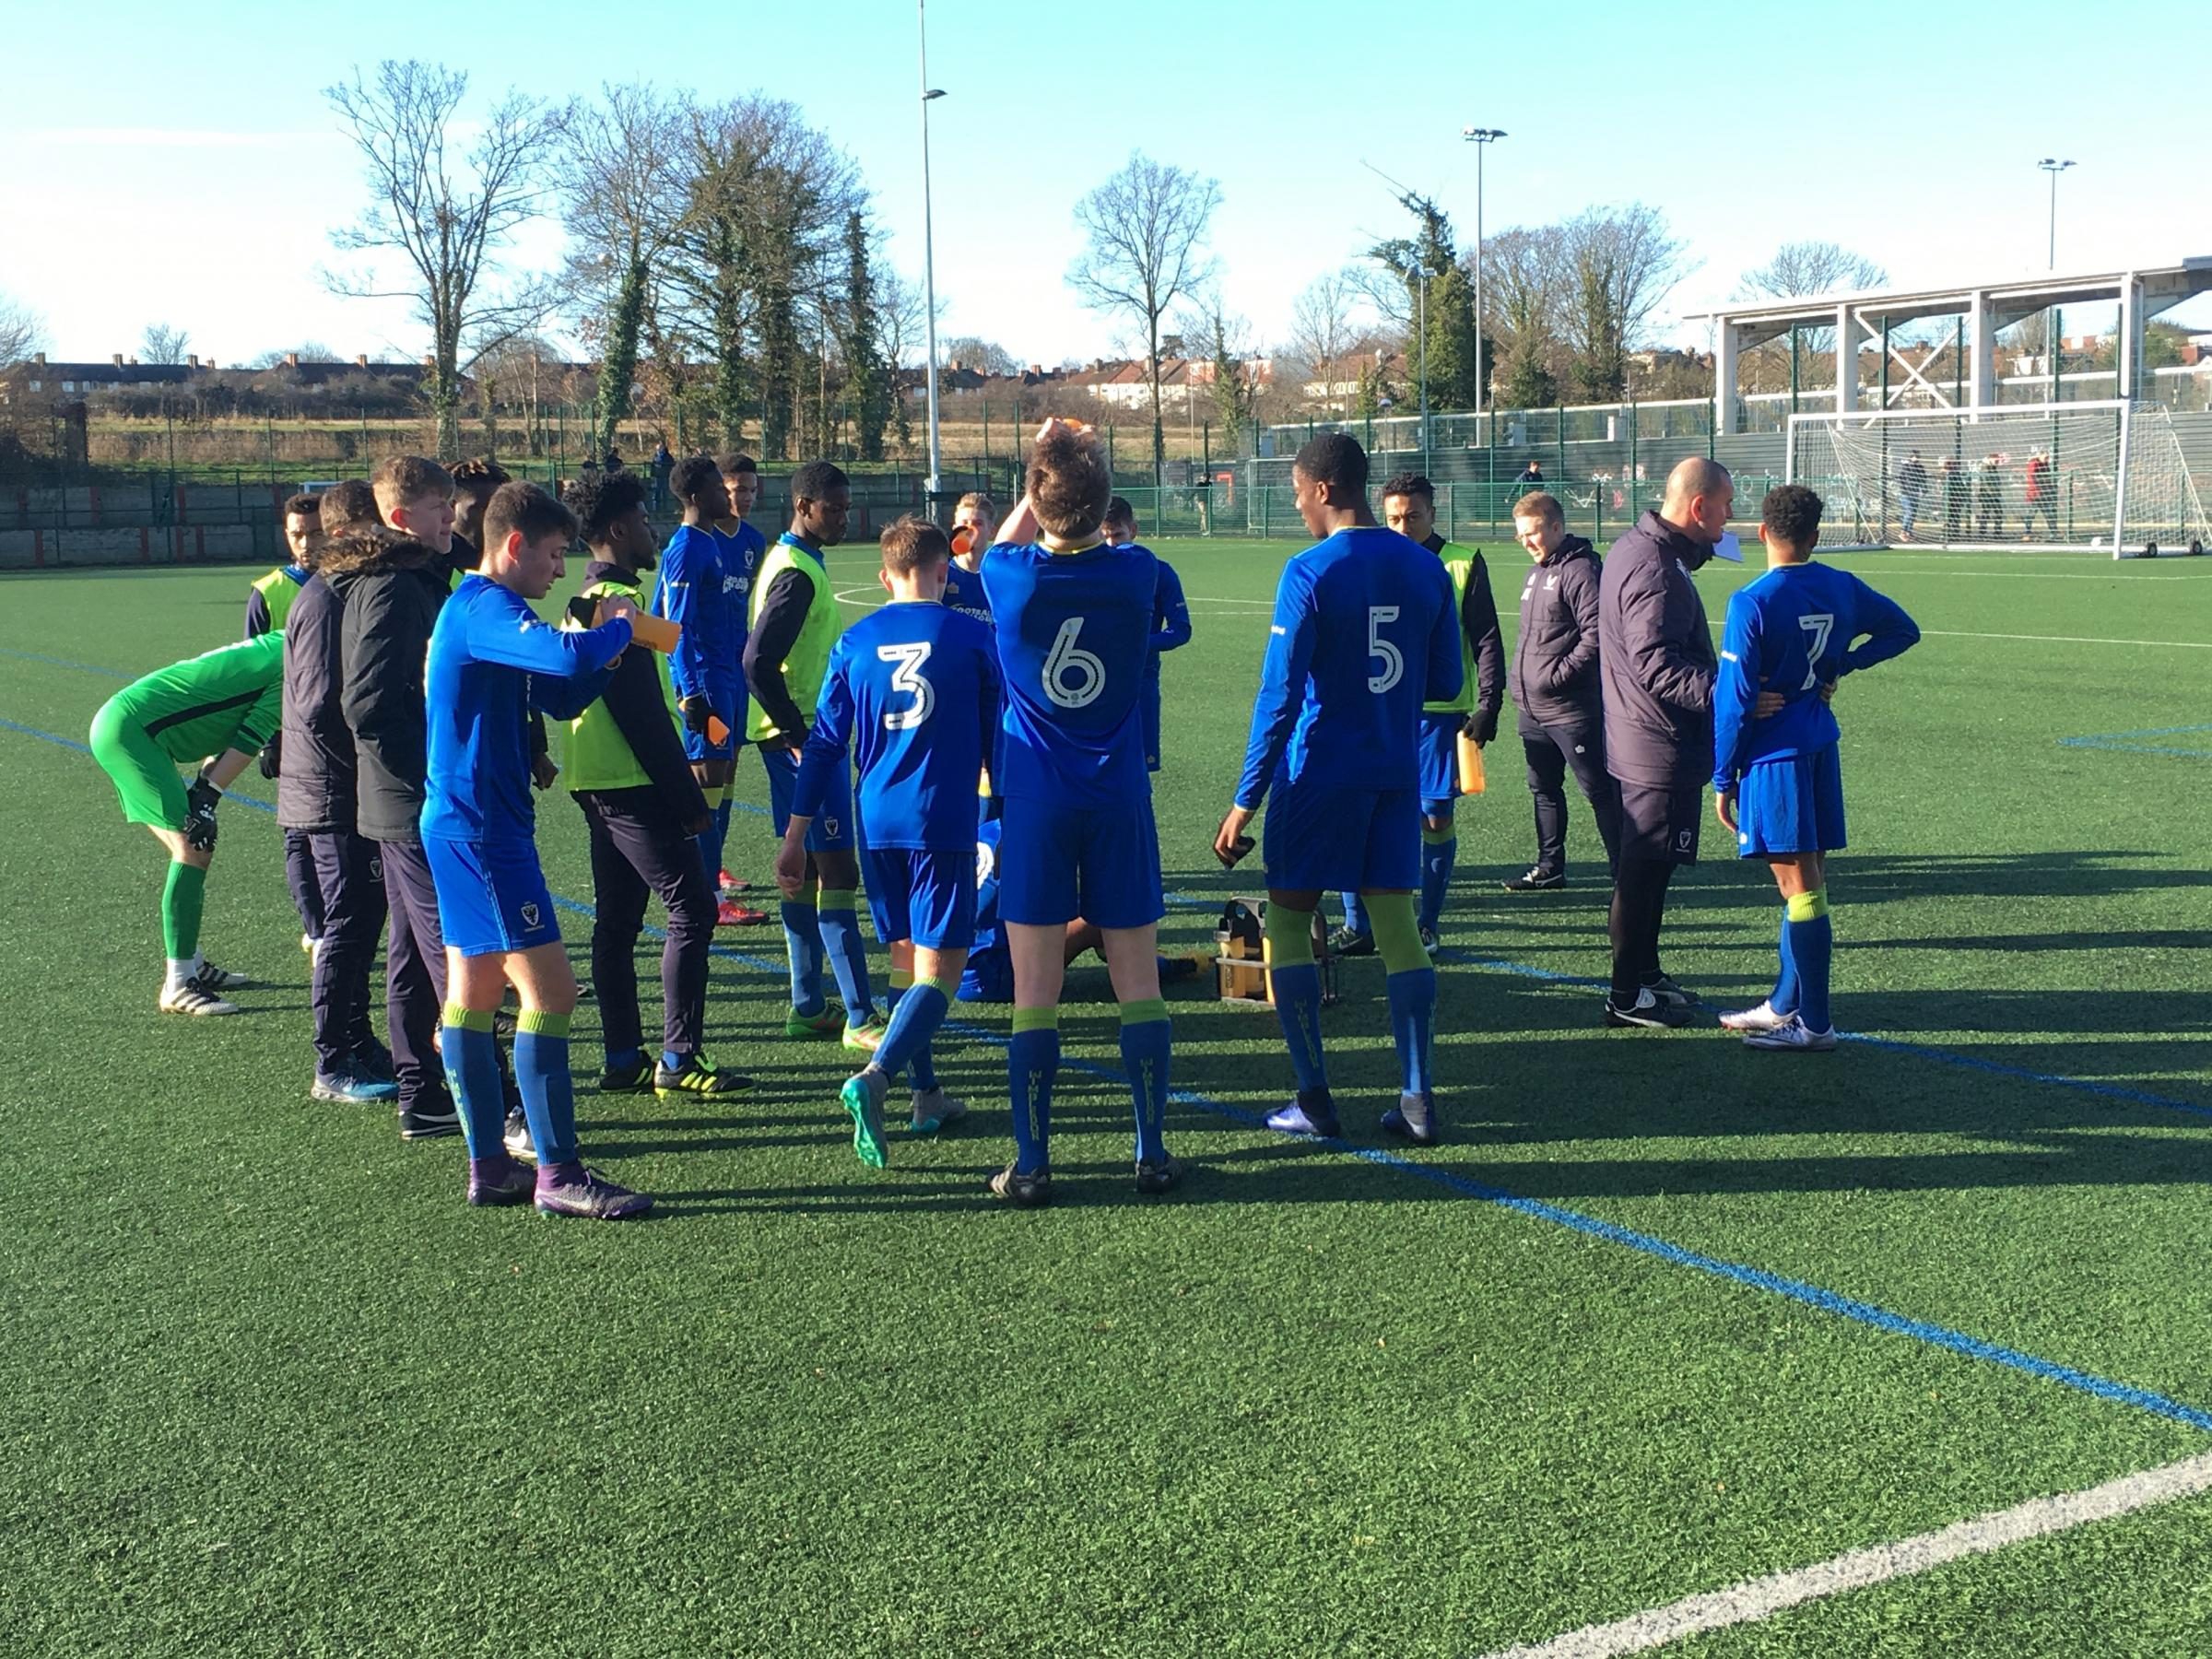 The AFC Wimbledon youth team impressed. Photo: Stuart Deacons of the 9YRS Podcast